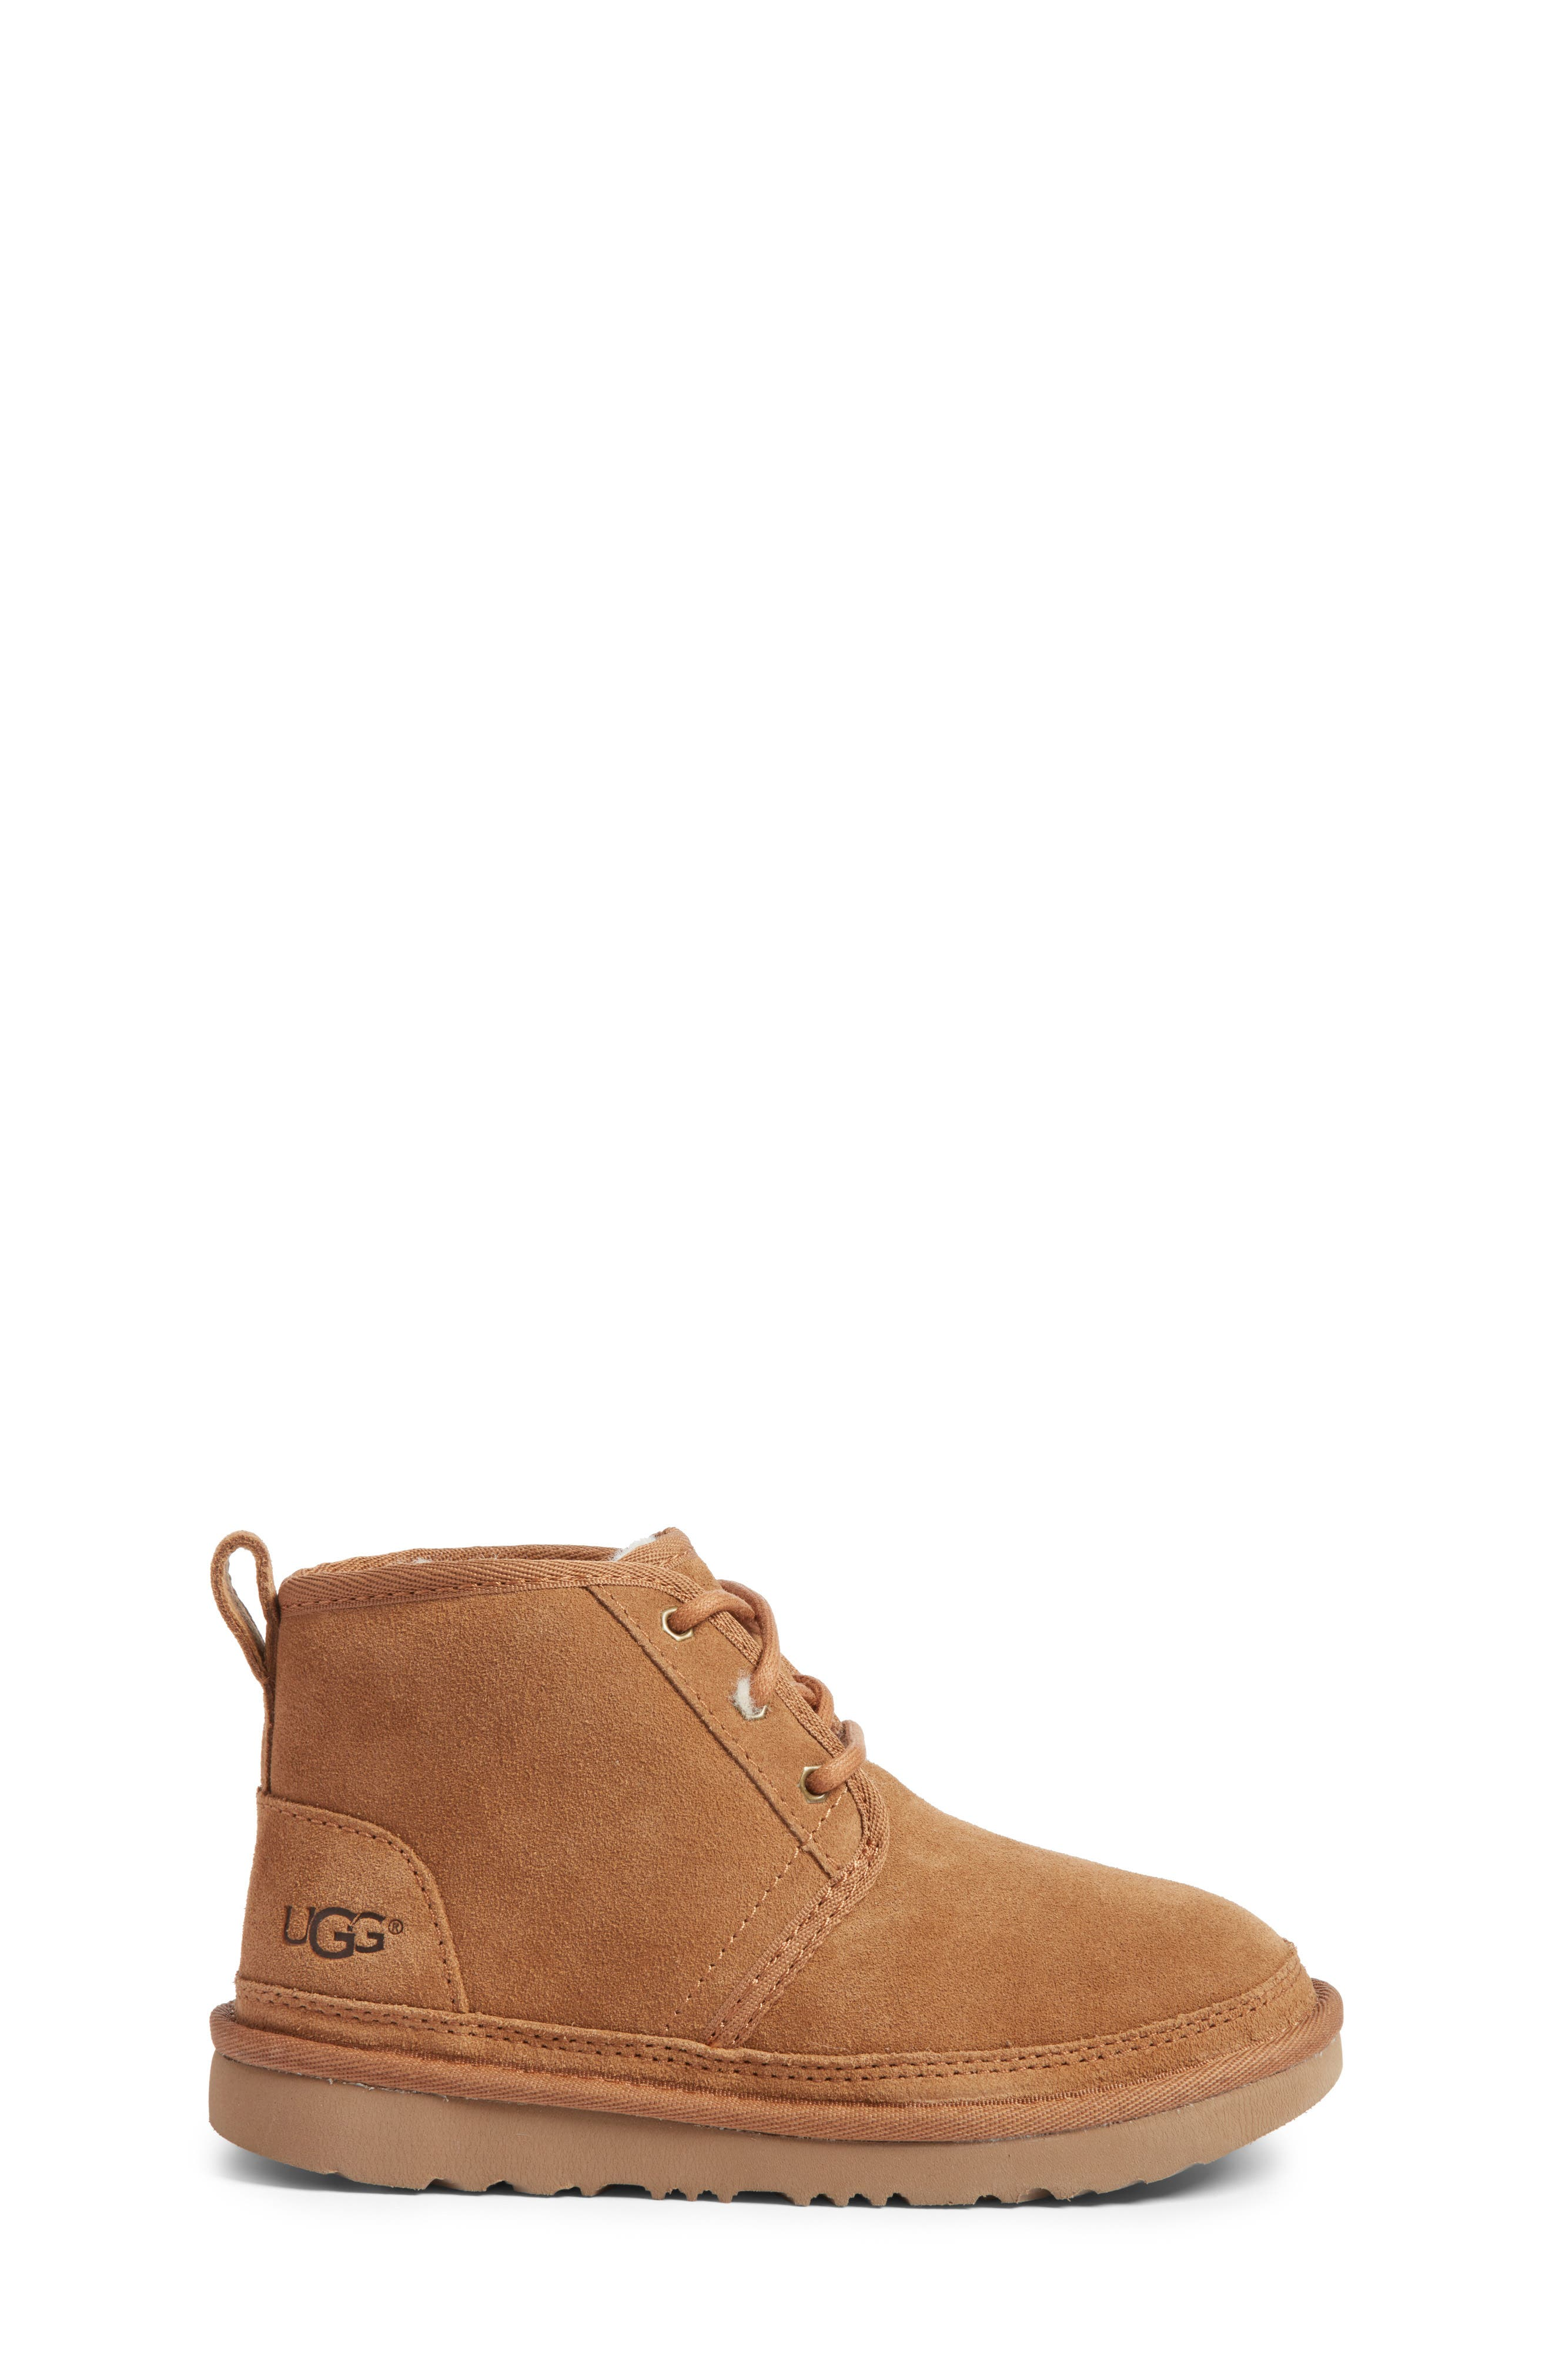 UGG<SUP>®</SUP>, Neumel II Water Resistant Chukka Boot, Alternate thumbnail 3, color, CHESTNUT BROWN